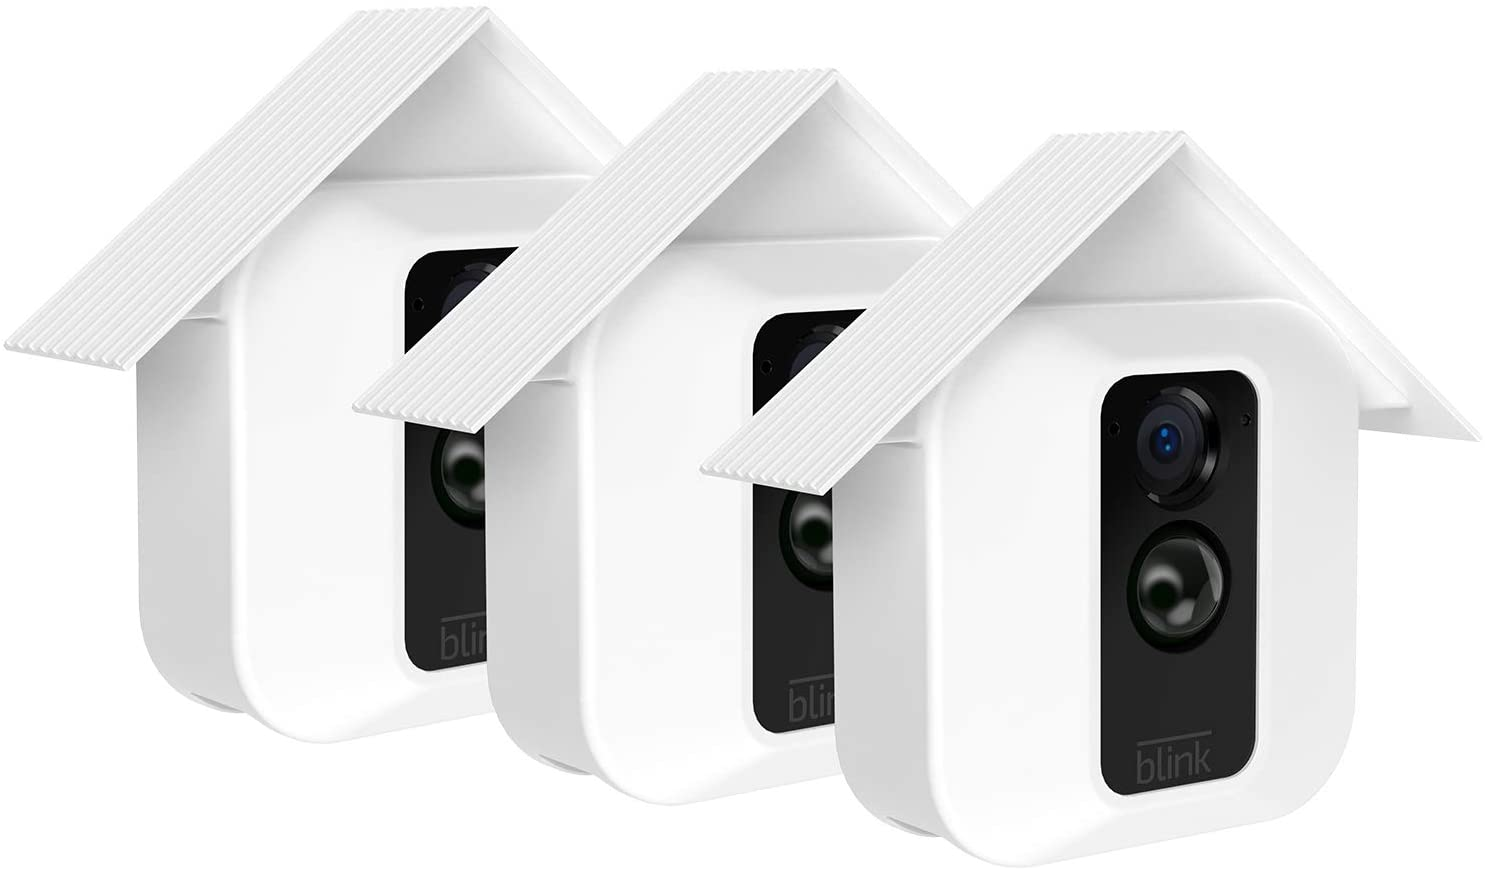 Aobelieve Silicone Cover Skin for Blink XT2 Camera, 3-Pack, White